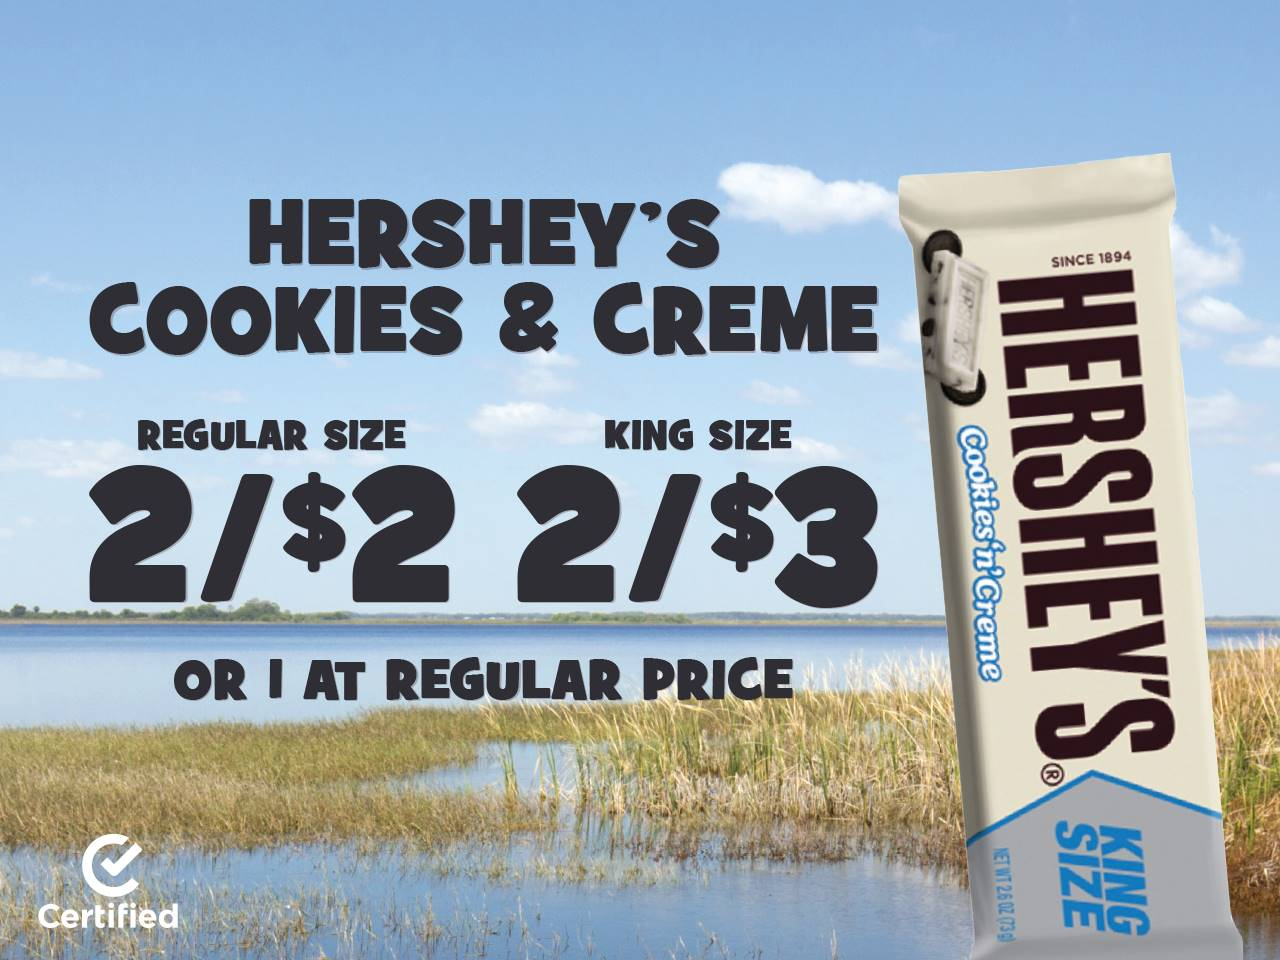 Hershey's Cookies & Creme 2 Reg. Size for $2, 2 King Size for $3, or 1 at Regular Price